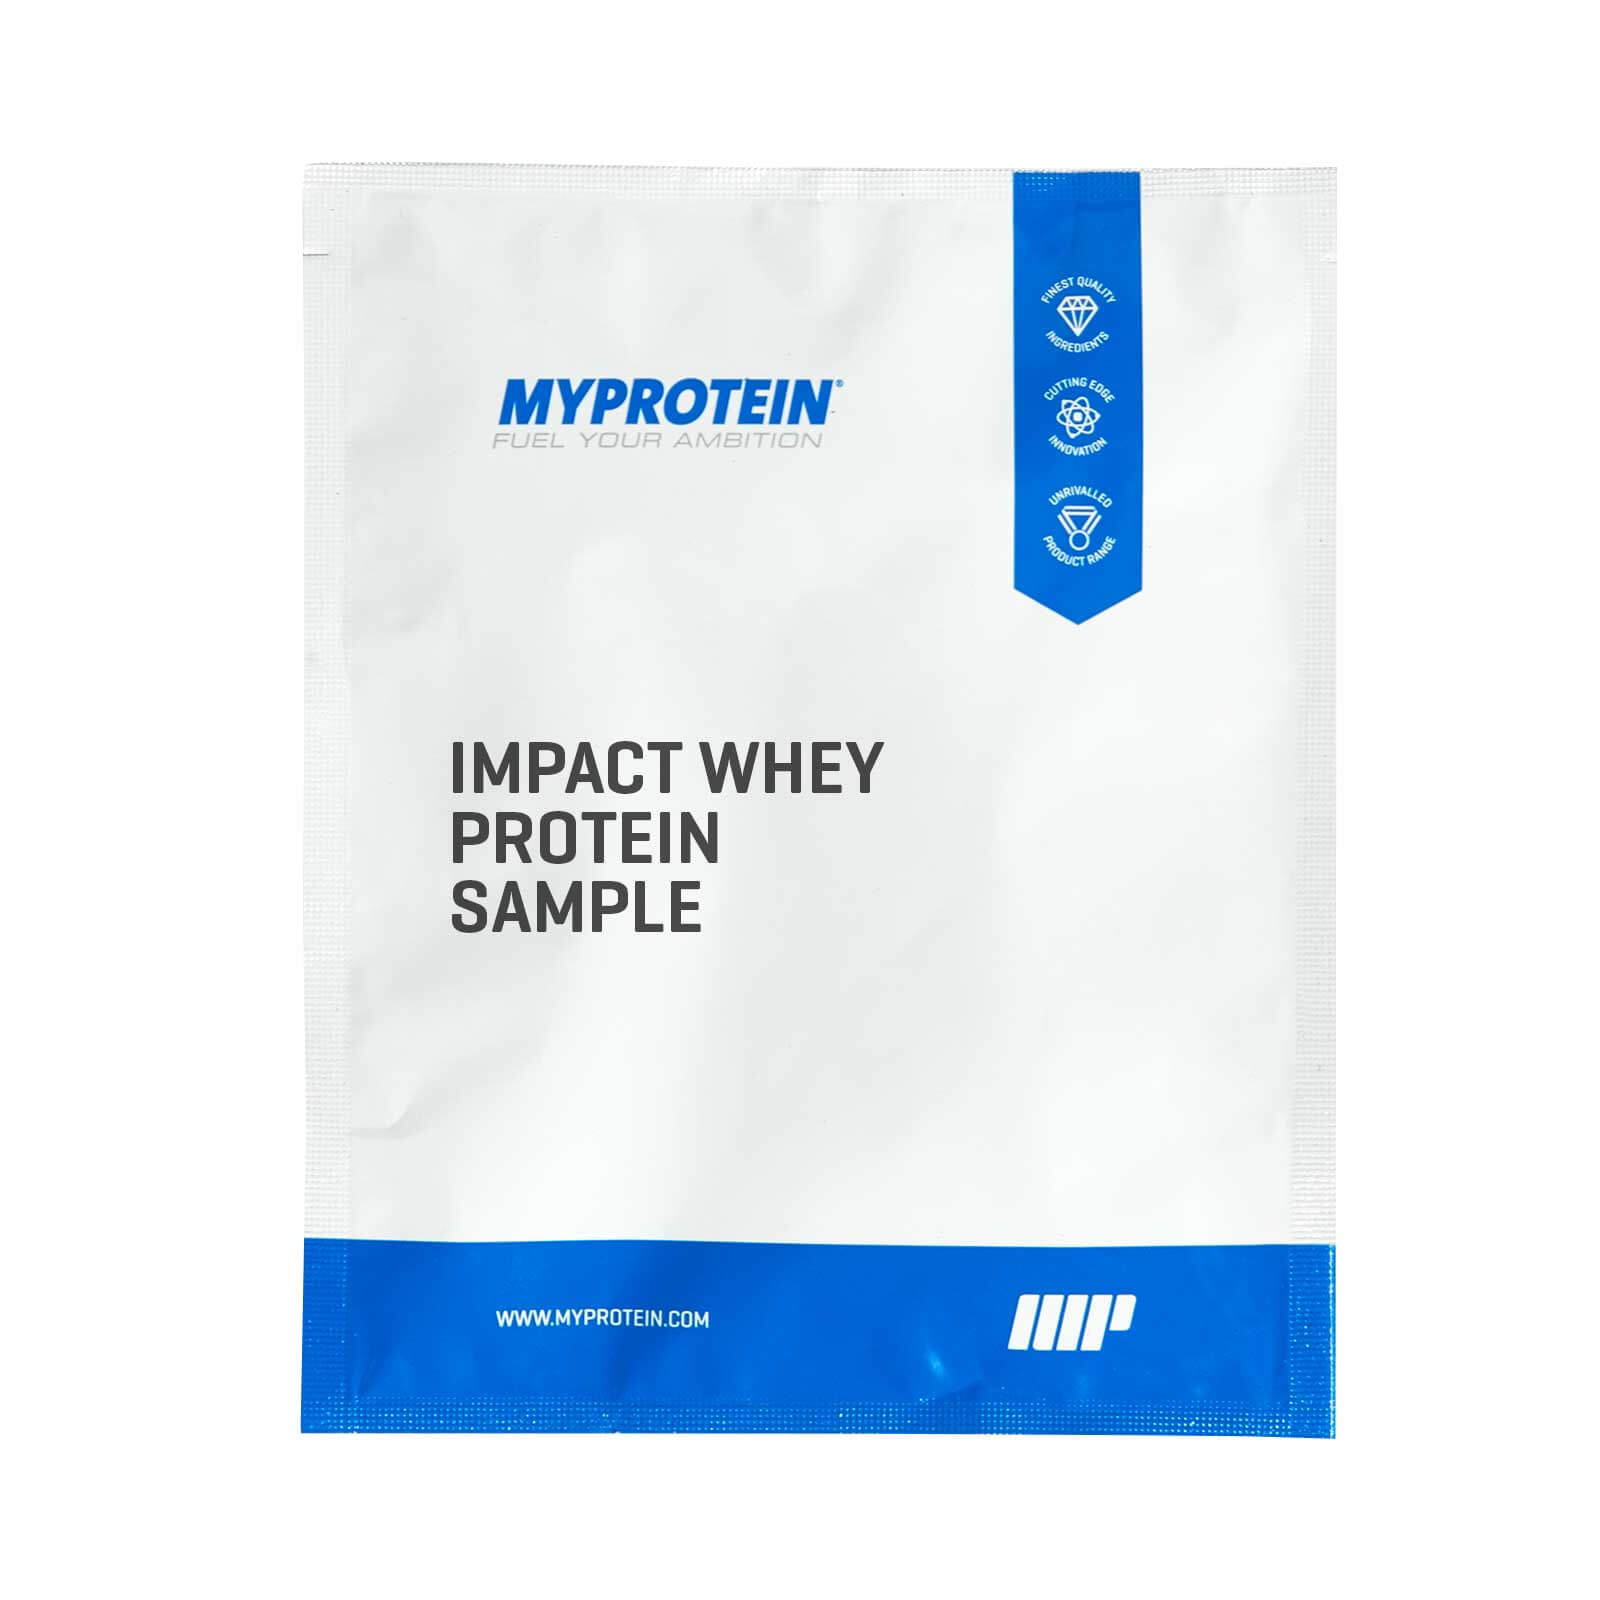 Impact Whey Protein (Sample) 25g, Peach Tea